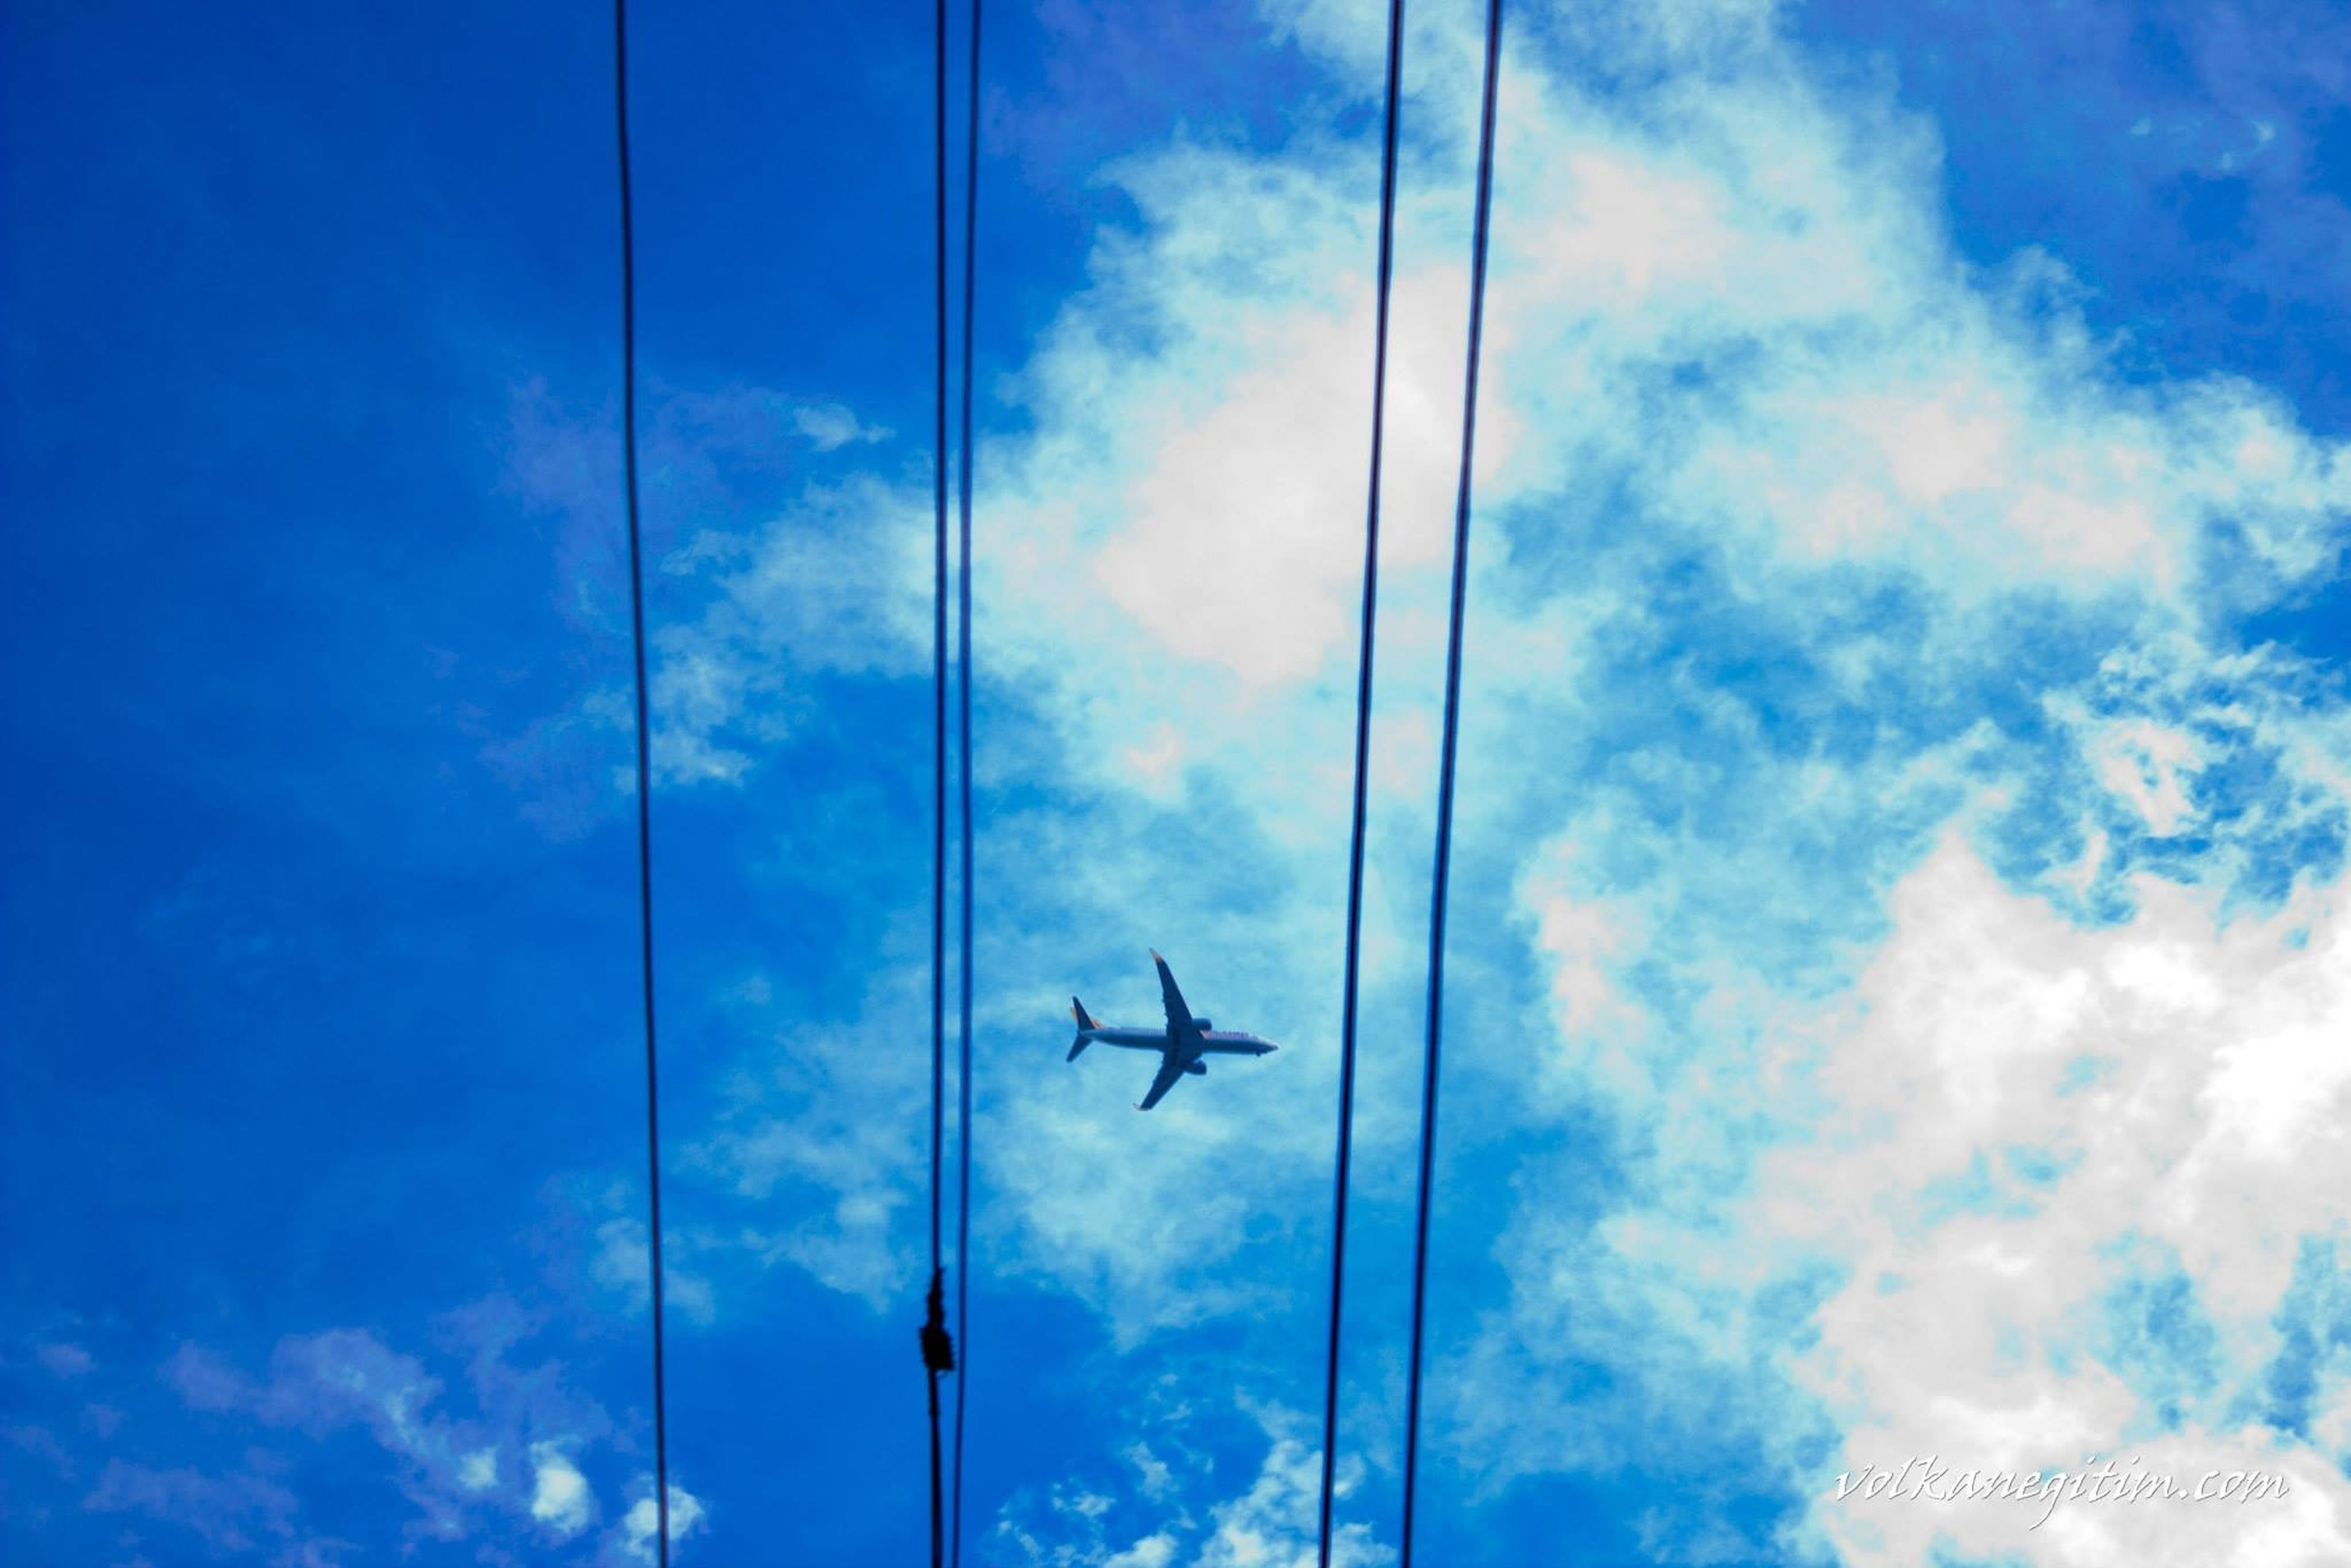 low angle view, flying, sky, transportation, airplane, mode of transport, cloud - sky, air vehicle, blue, mid-air, cloud, cloudy, on the move, public transportation, bird, day, wildlife, journey, animal themes, travel